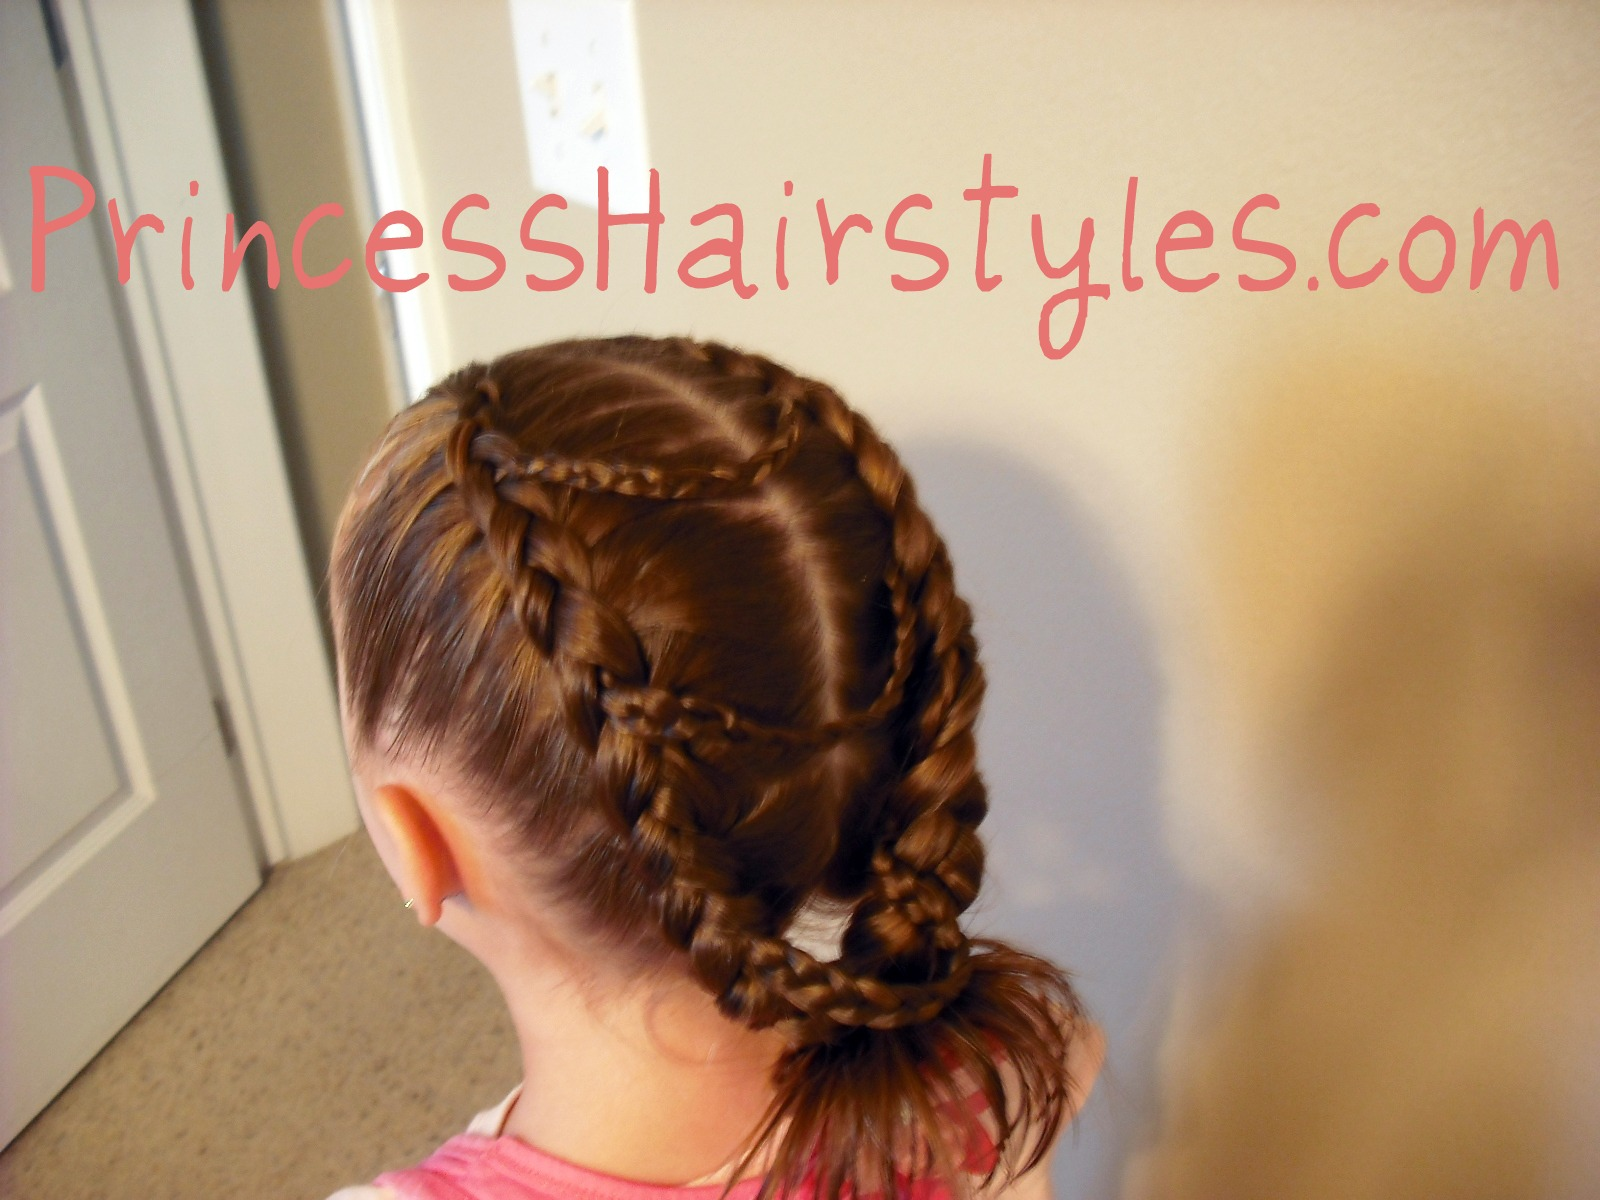 This princess hair style is relatively easy to make (as long as you